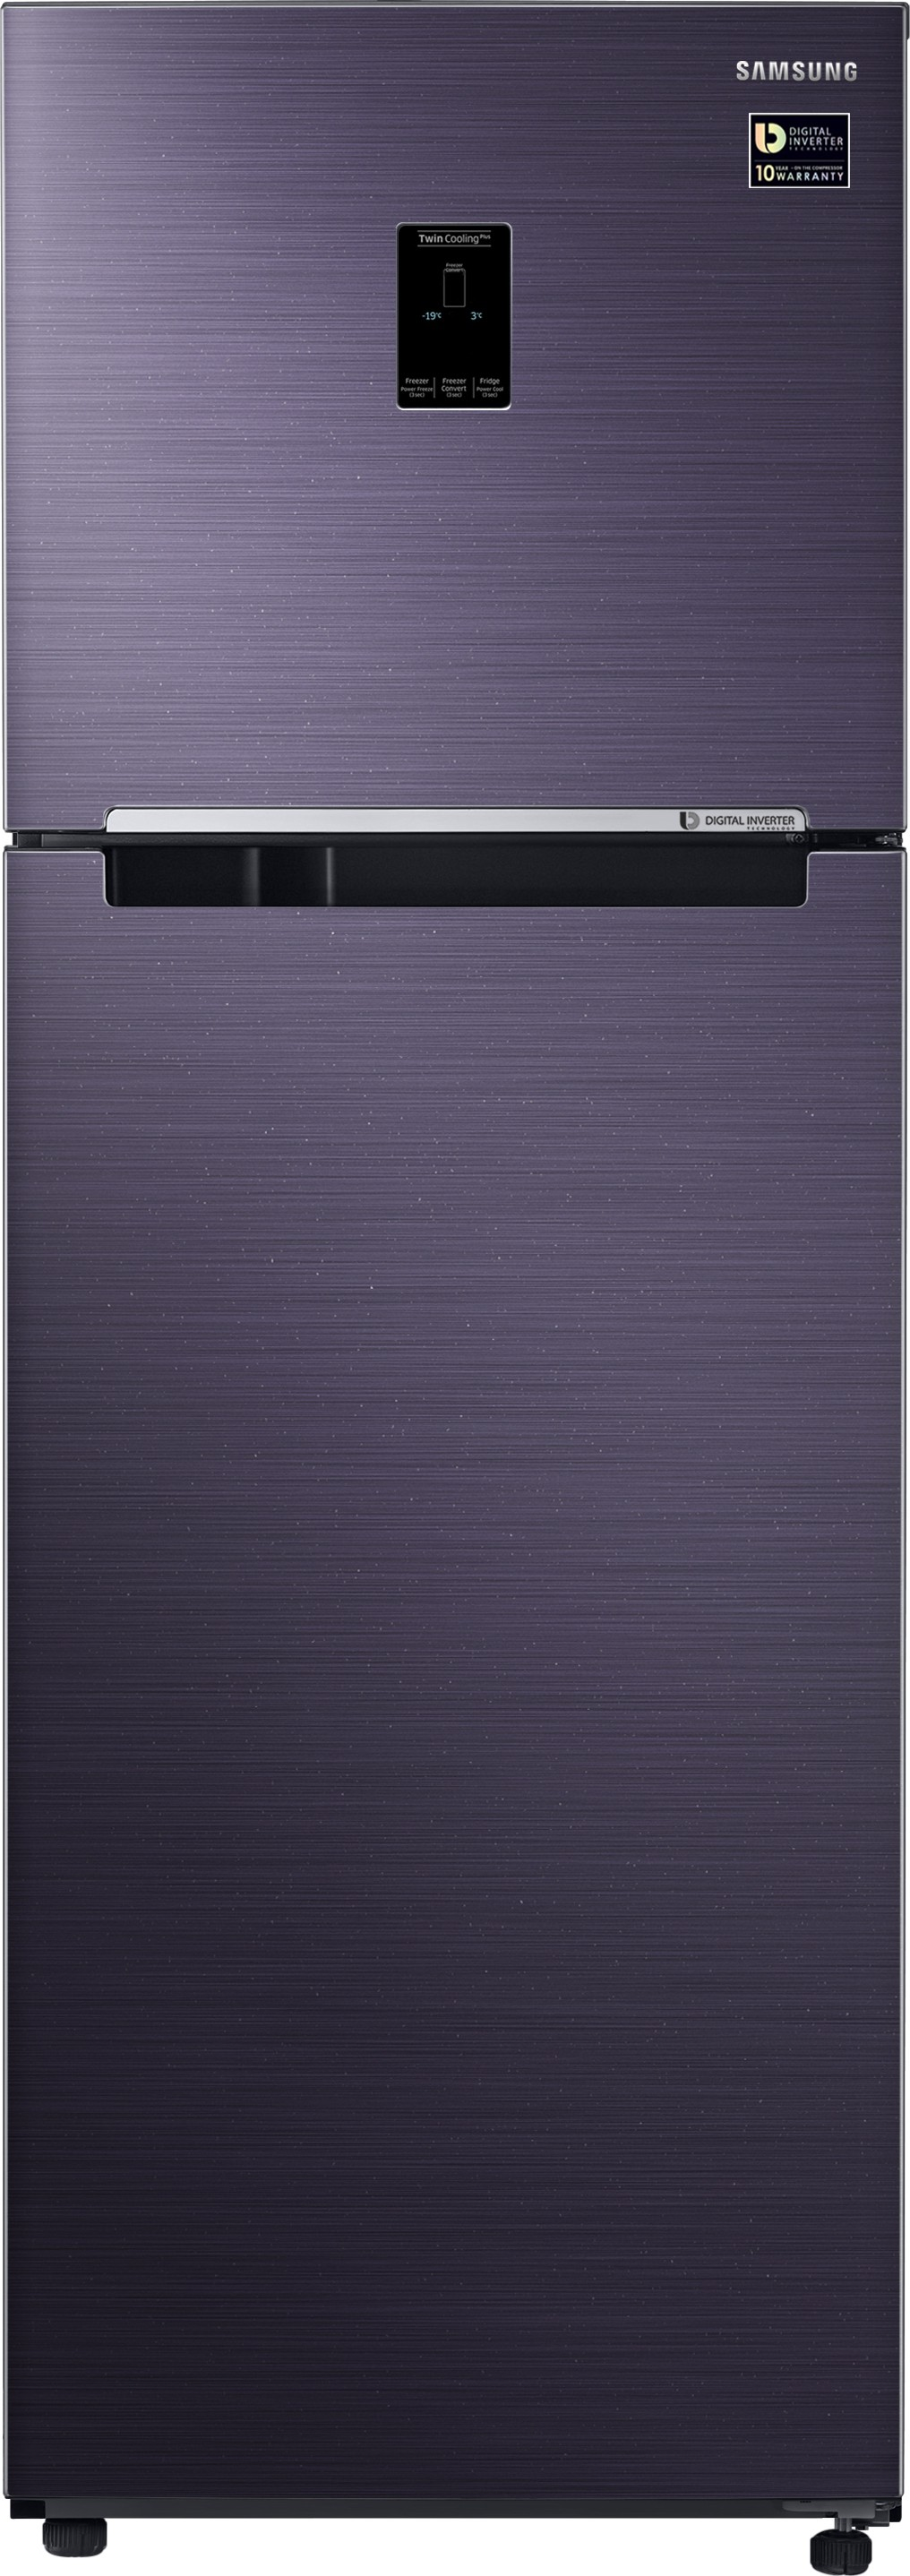 Samsung 345 L Frost Free Double Door 3 Star Refrigerator (RT37M5538UT/TL) Image